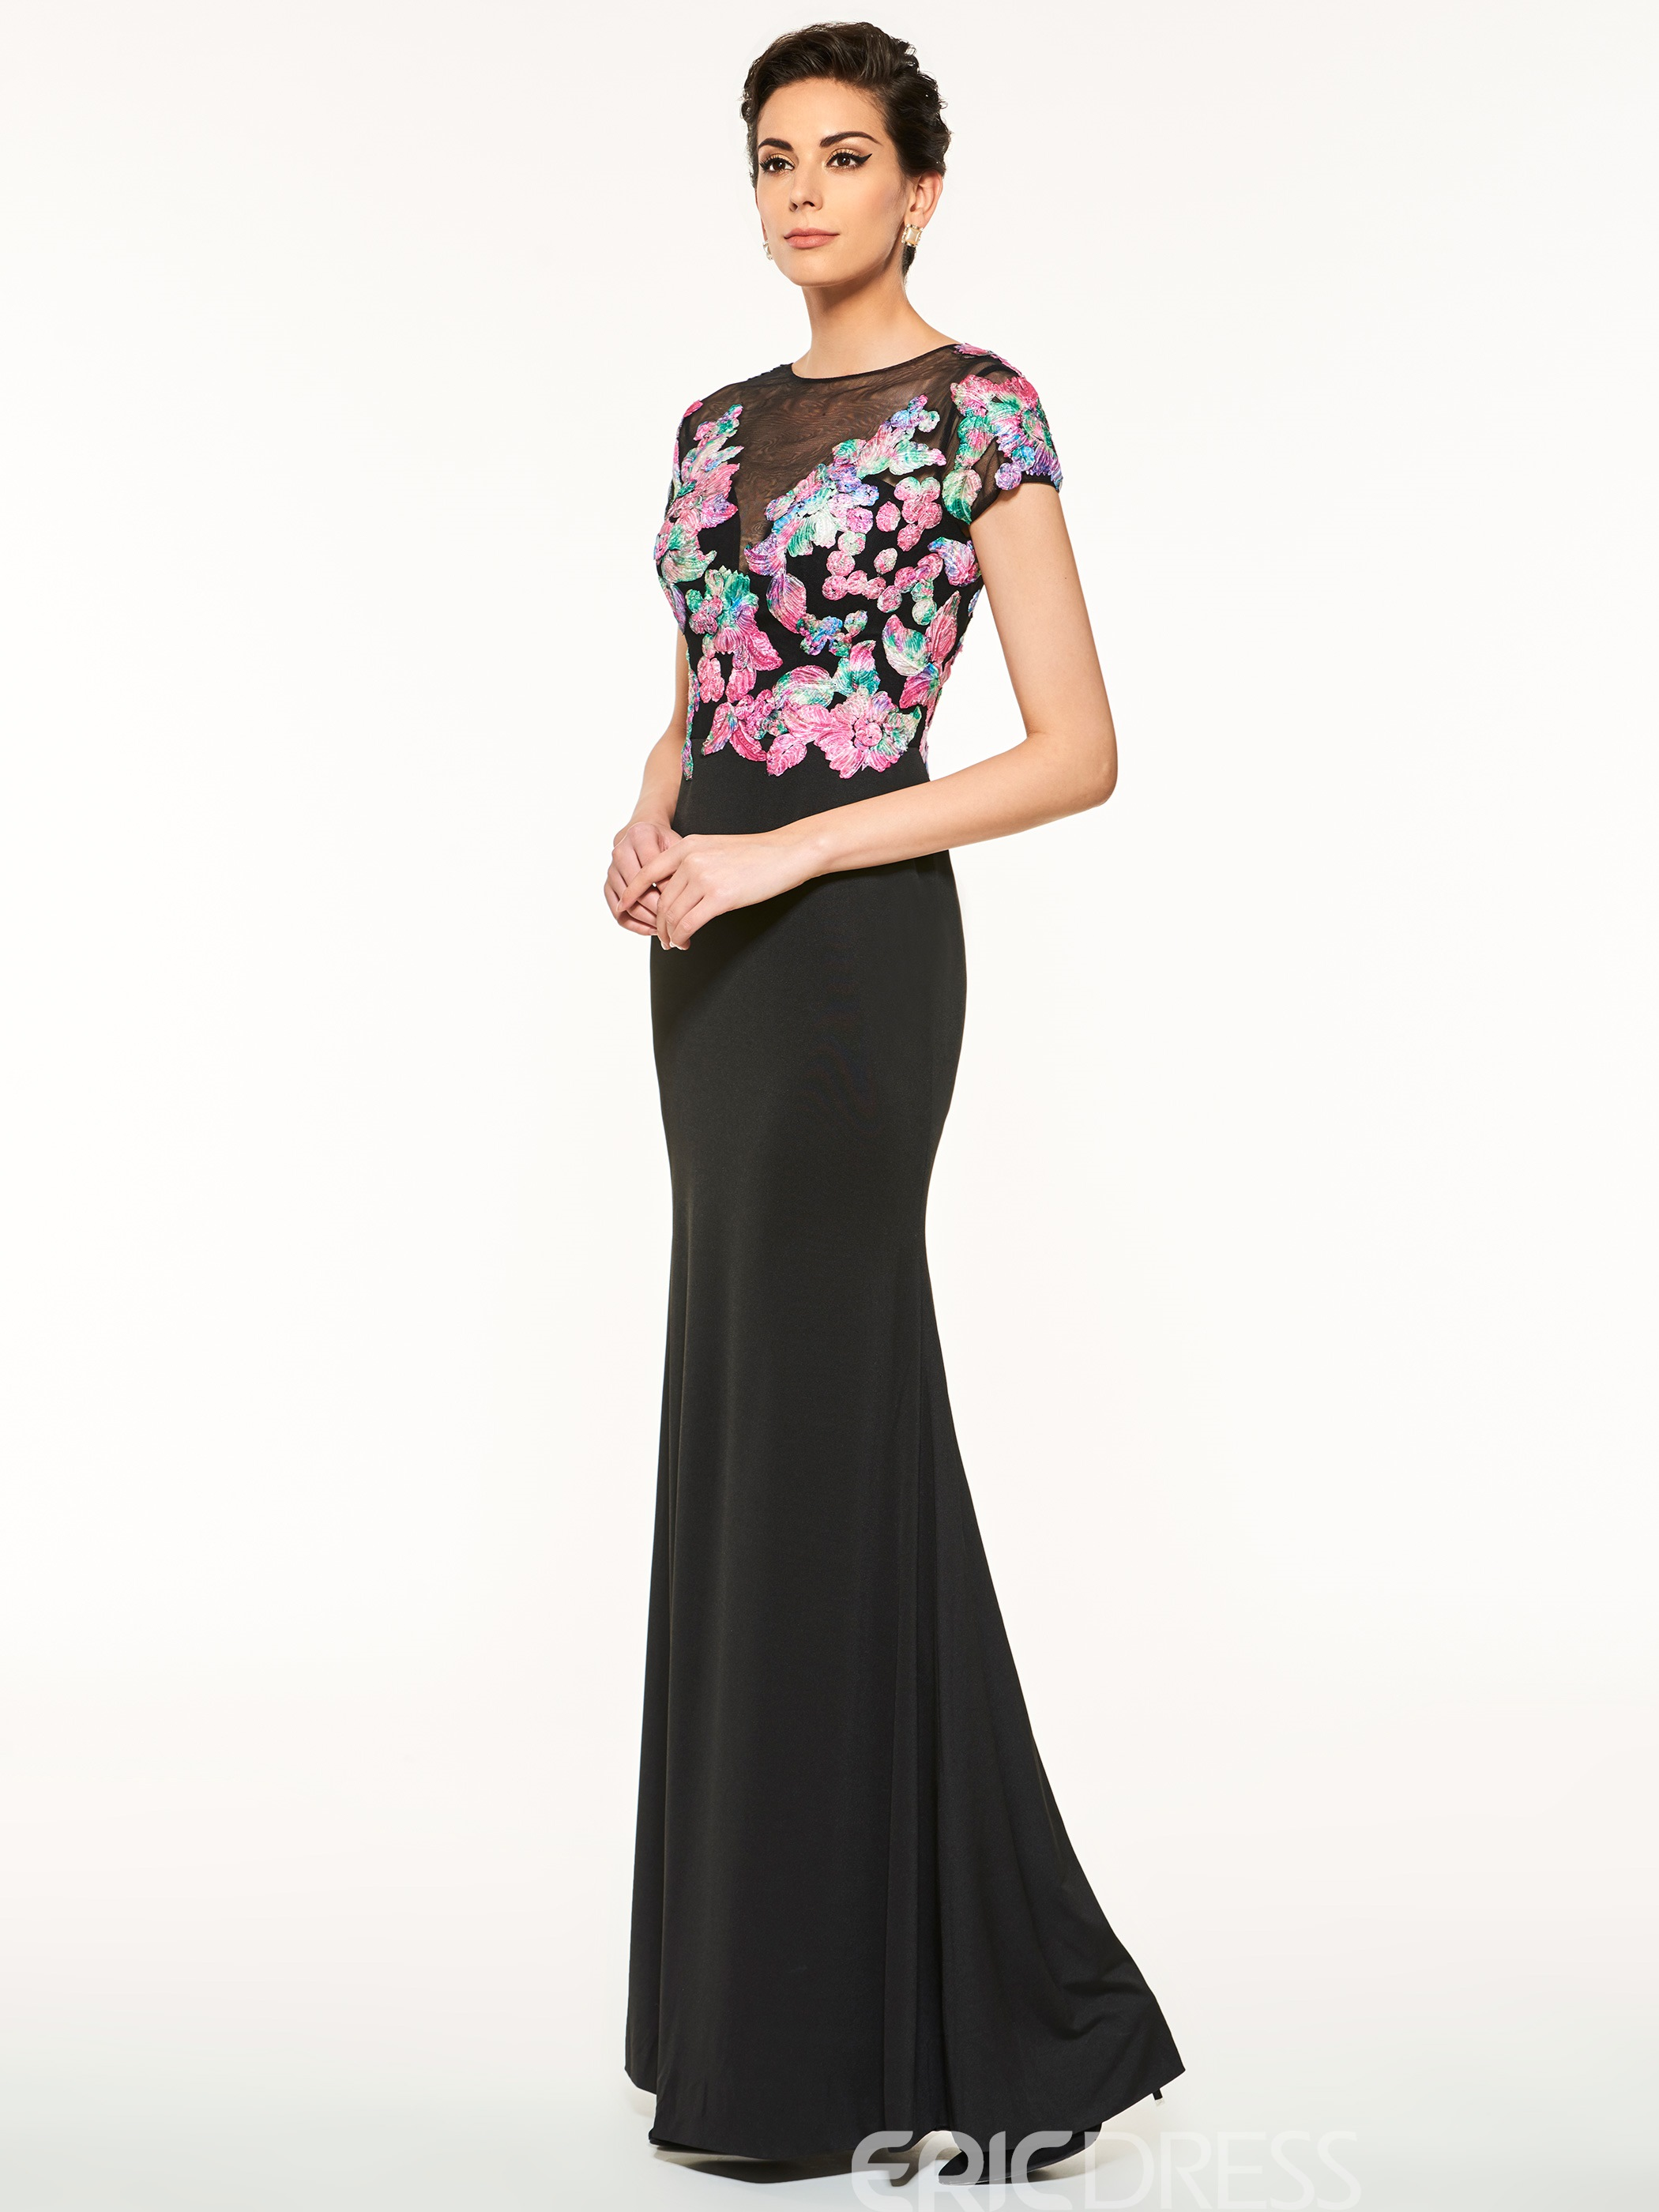 Ericdress Beautiful Appliques Short Sleeves Sheath Long Mother Of The Bride Dress